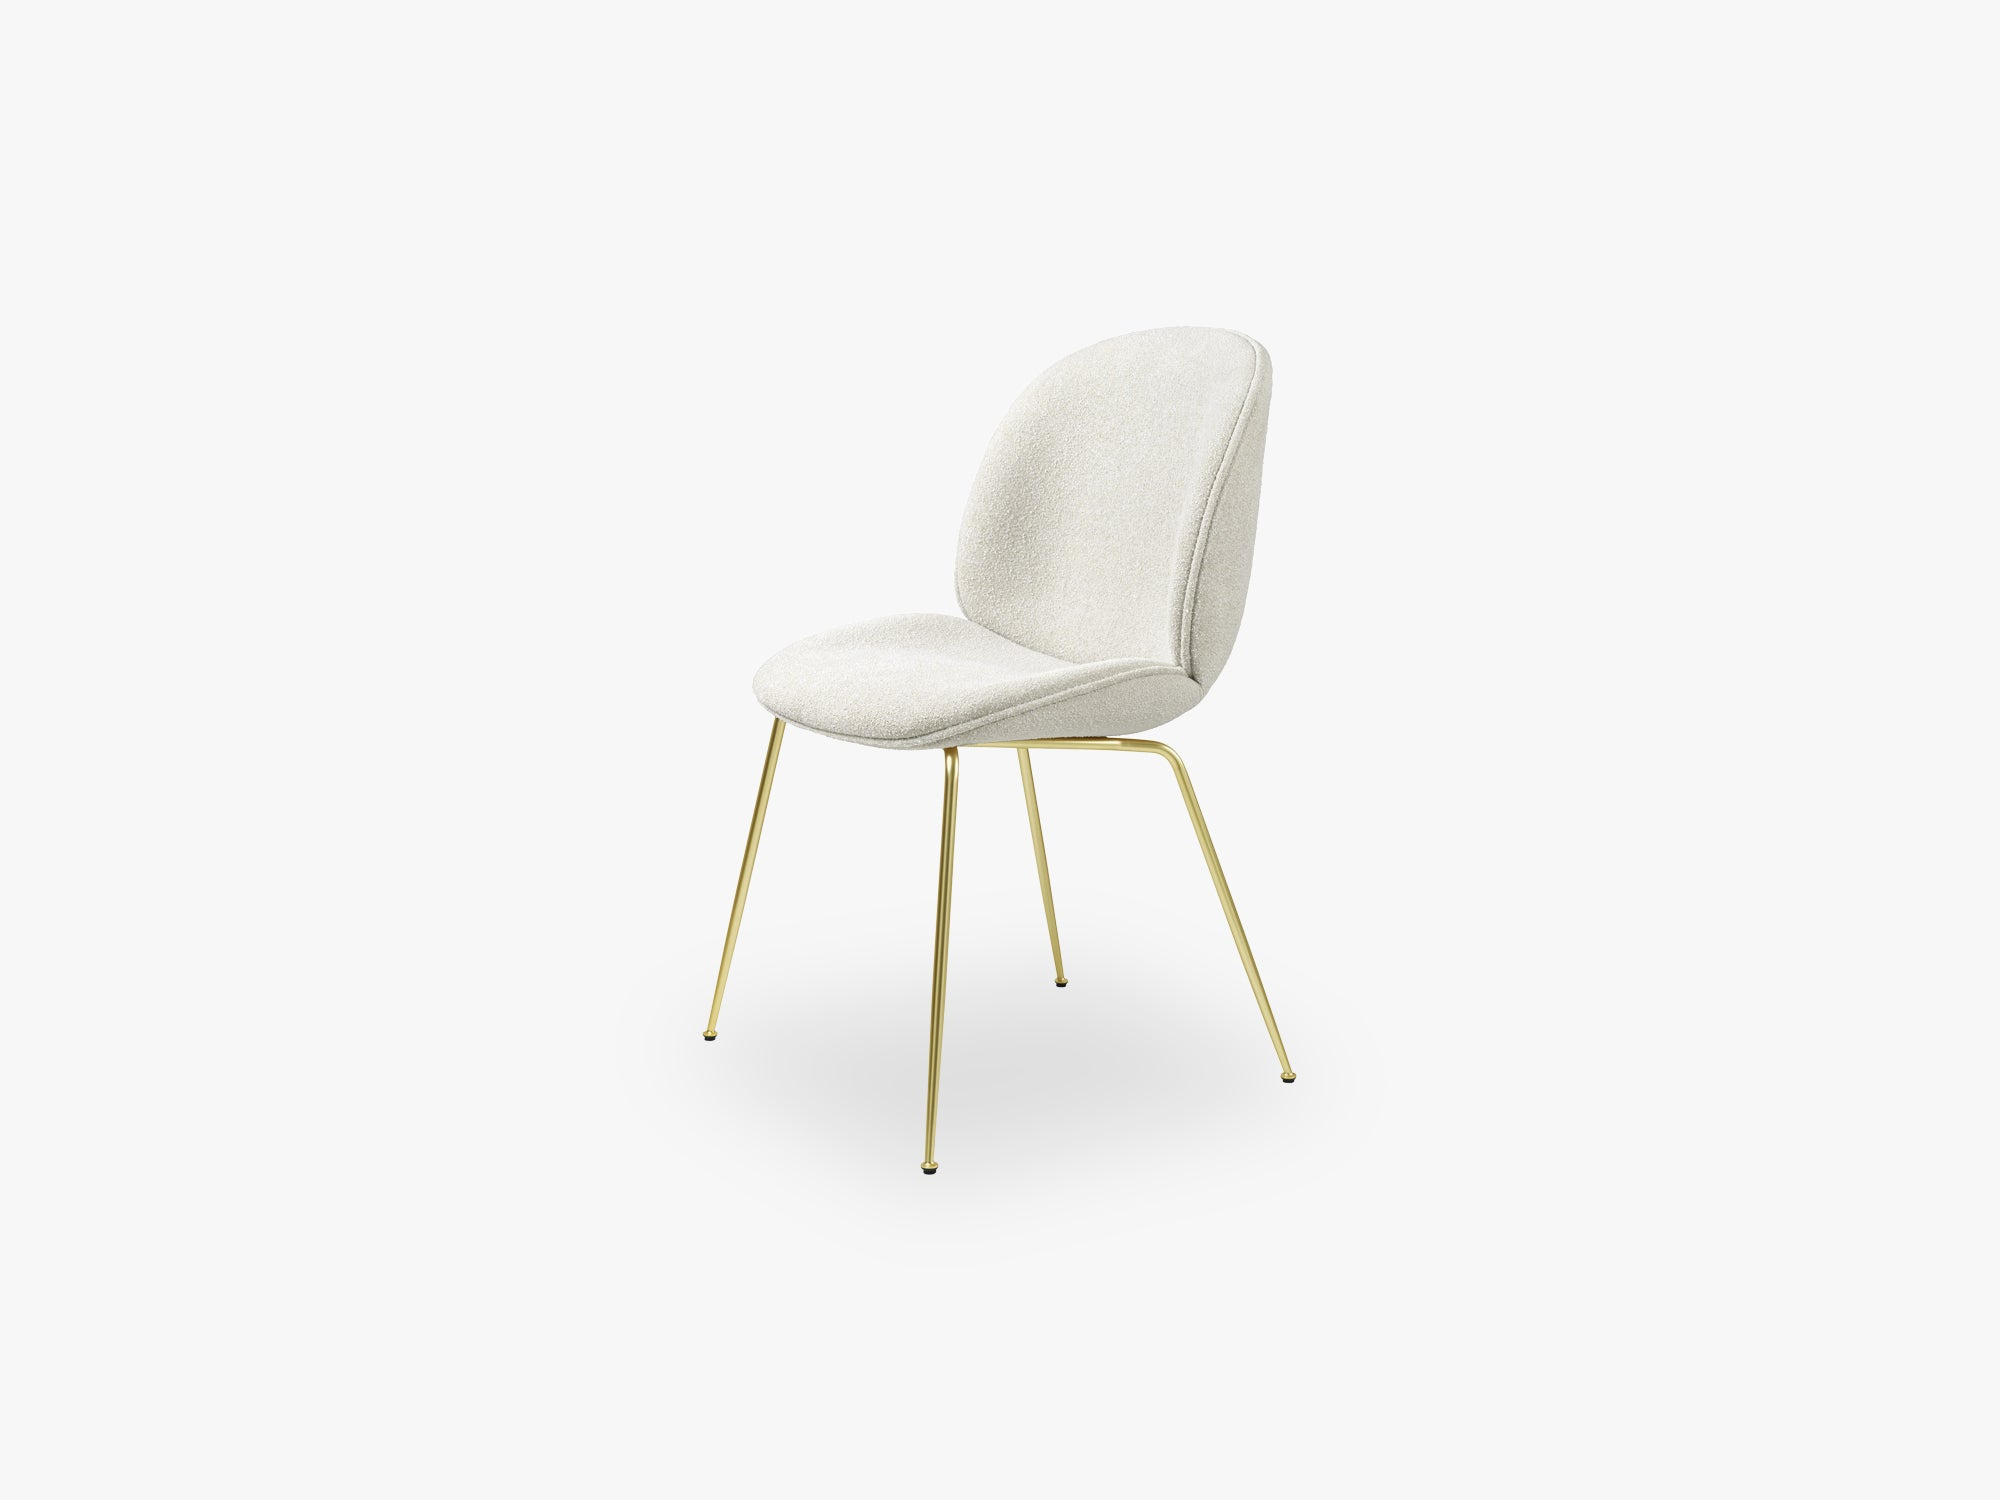 Beetle Dining Chair (Fully), Brass Semi Matt, Grp 02, Light Bouclé, GUBI (001) fra GUBI